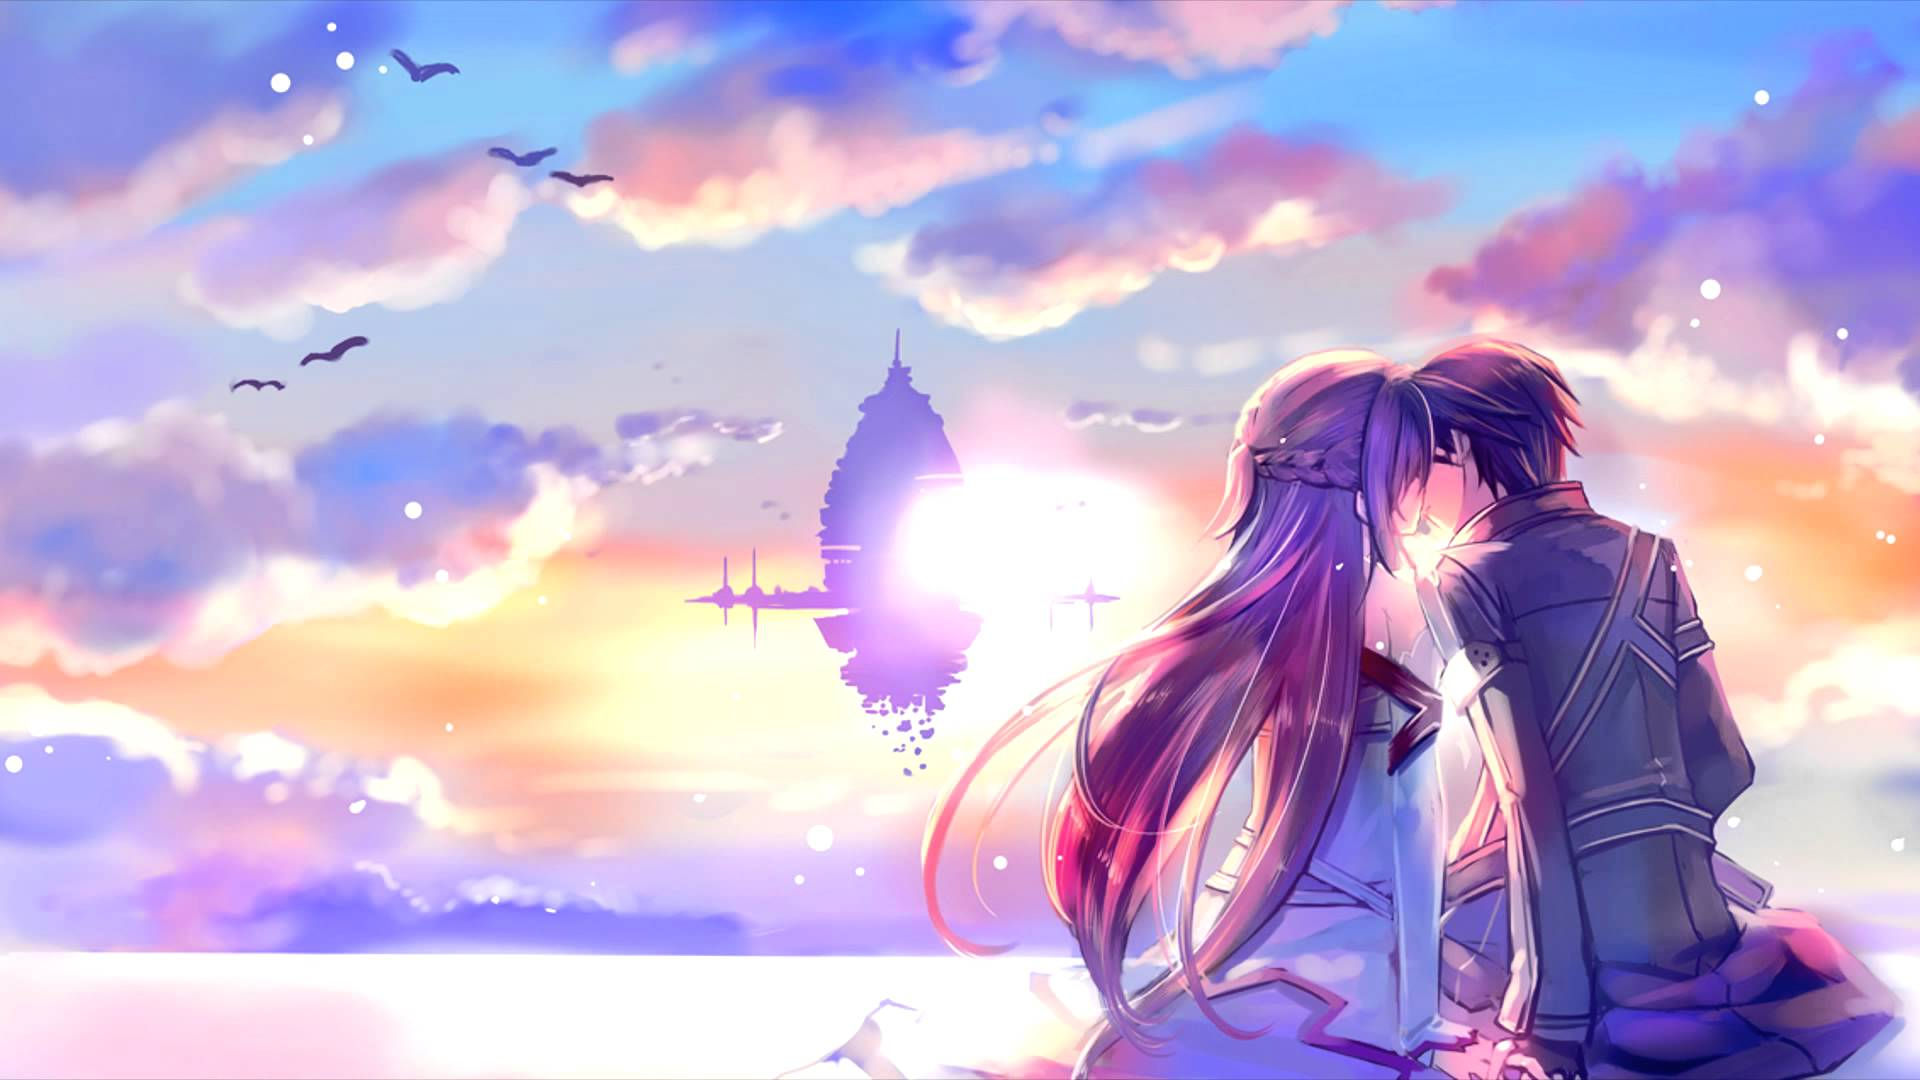 75 anime love backgrounds Pictures